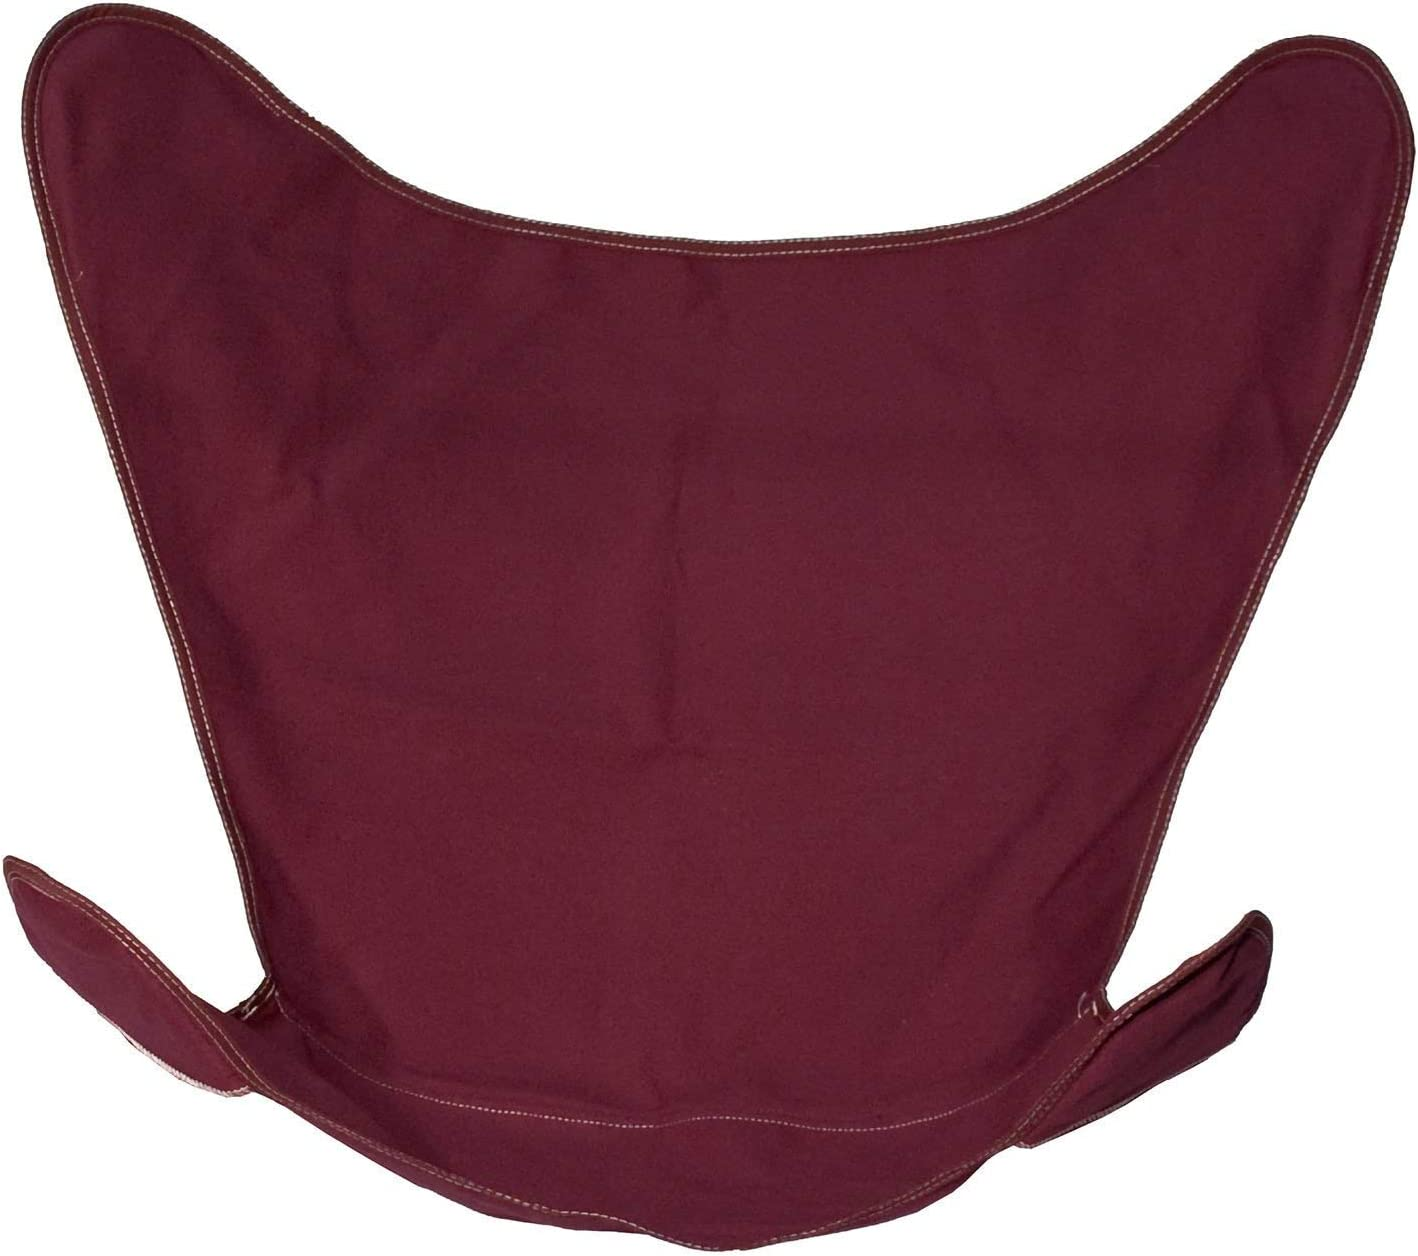 Butterfly discount Chair Replacement Covers Heavy M 14oz Duty Duck Max 63% OFF Cotton